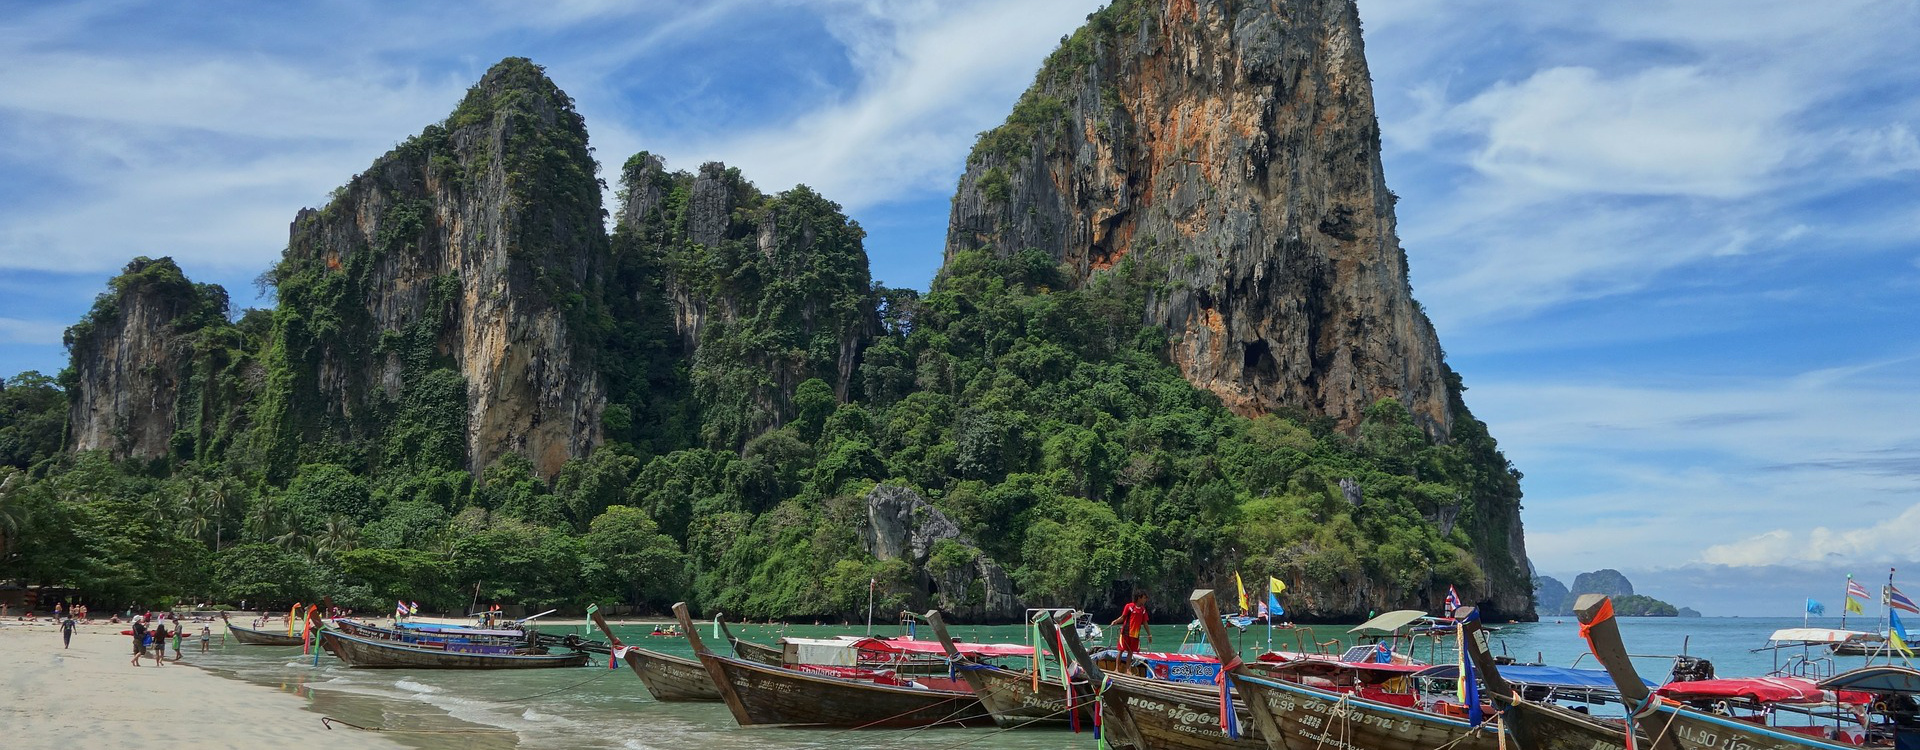 Thailande-Railay